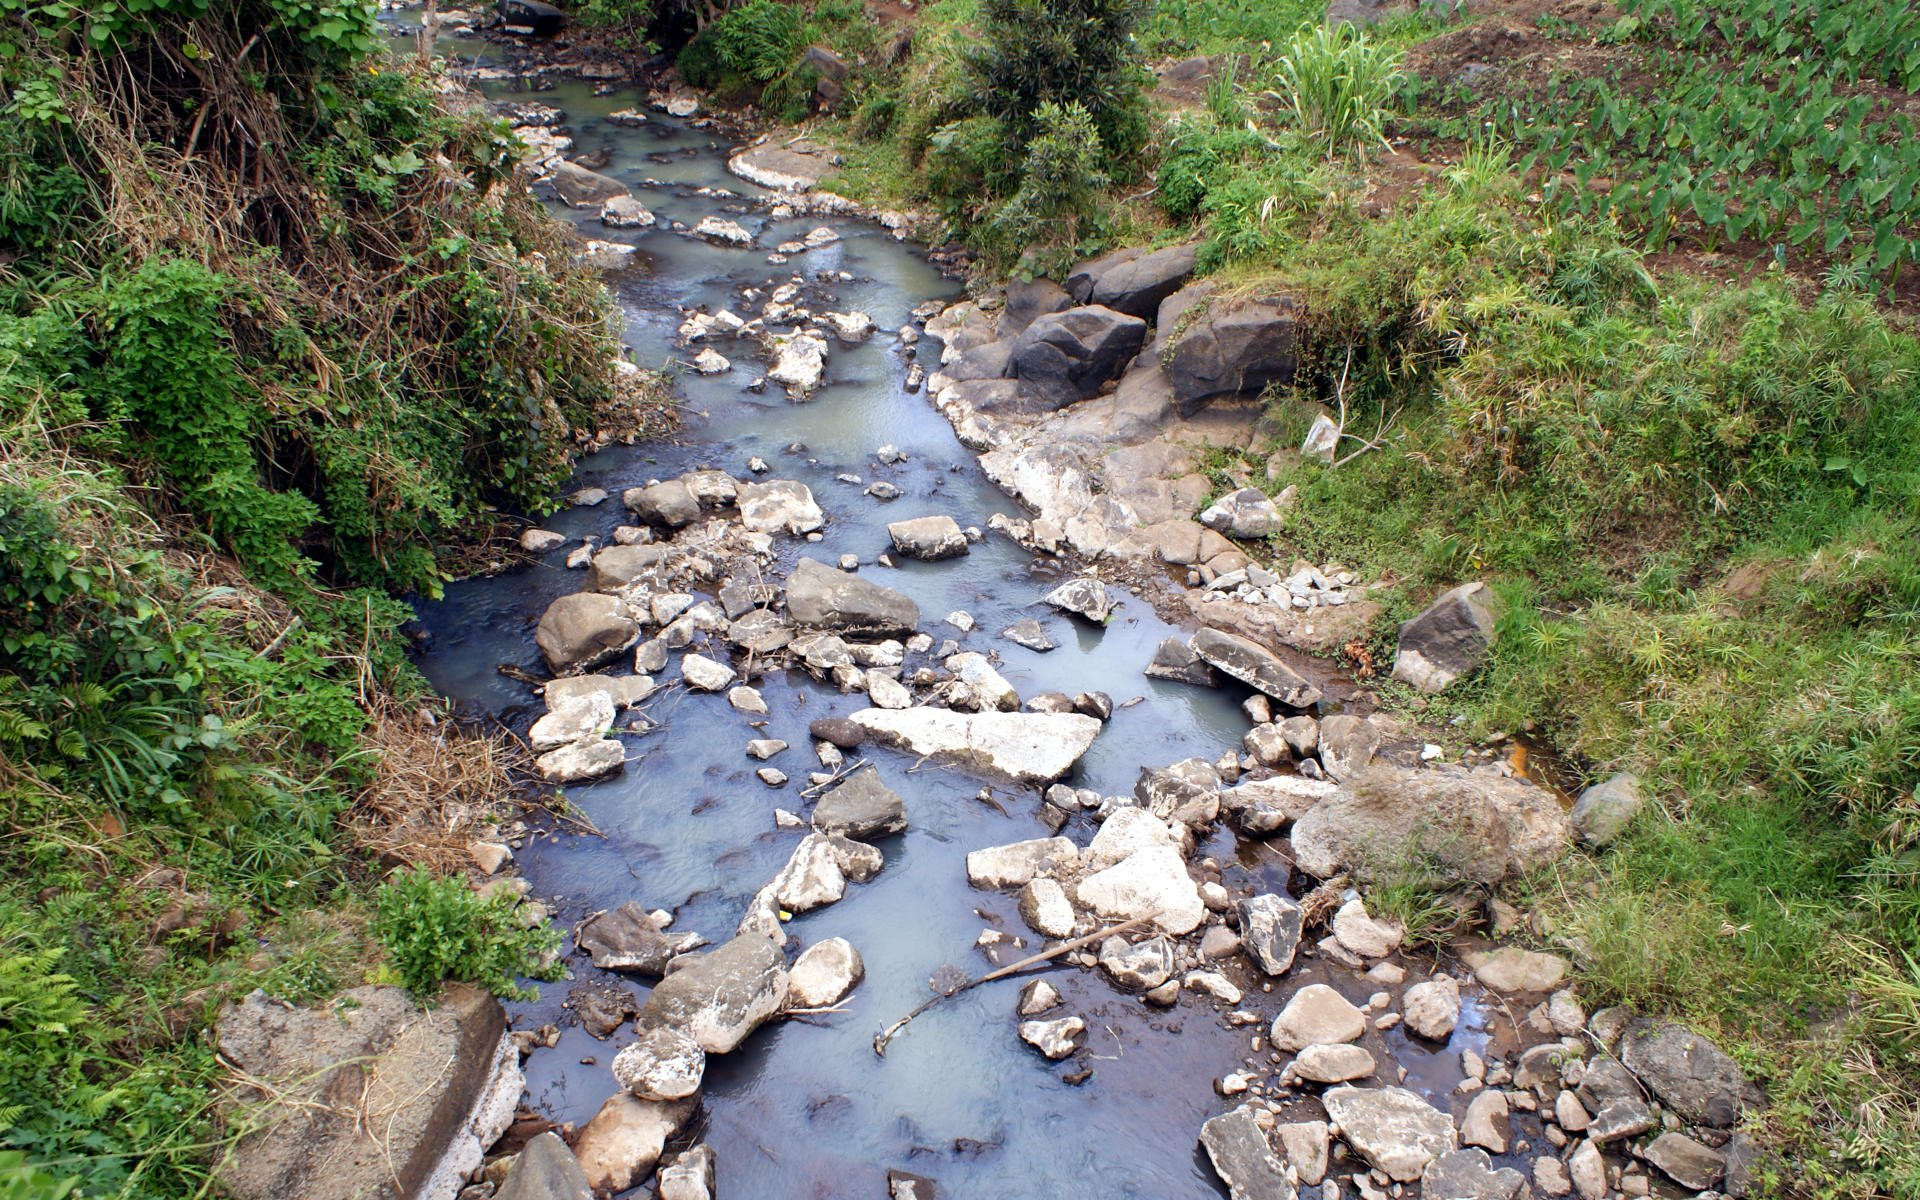 Might the new Mati road open up the closed area to more scrutiny and offer a chance to save a dying legacy of great rivers in Meru?